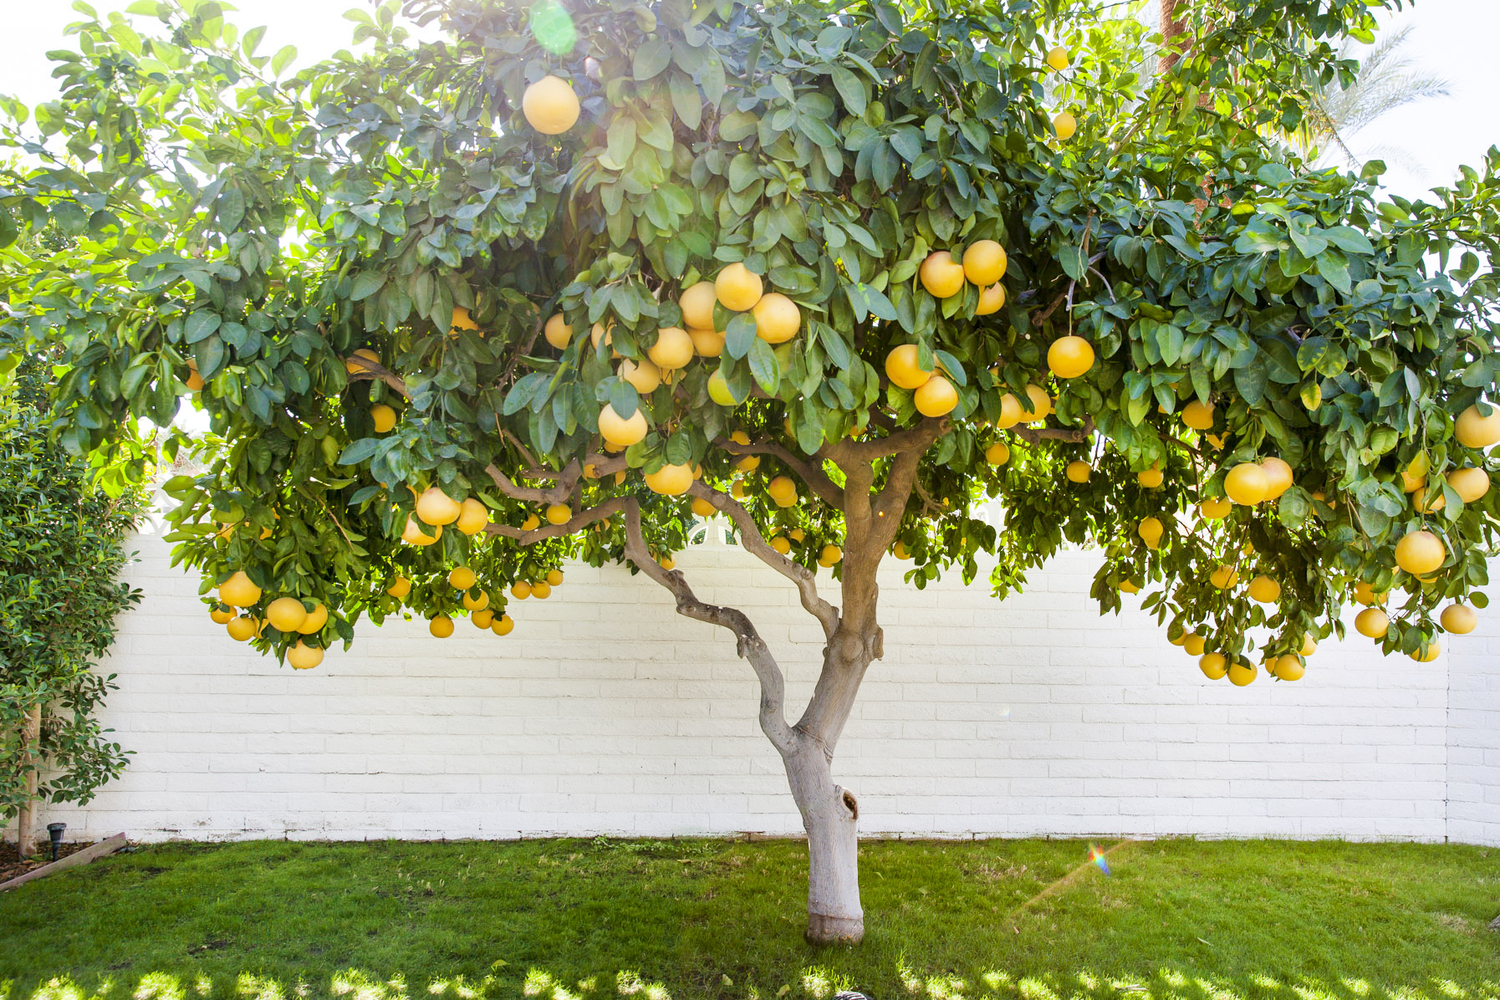 A sunny photo of an orange tree full of fruit in front of a white brick building.